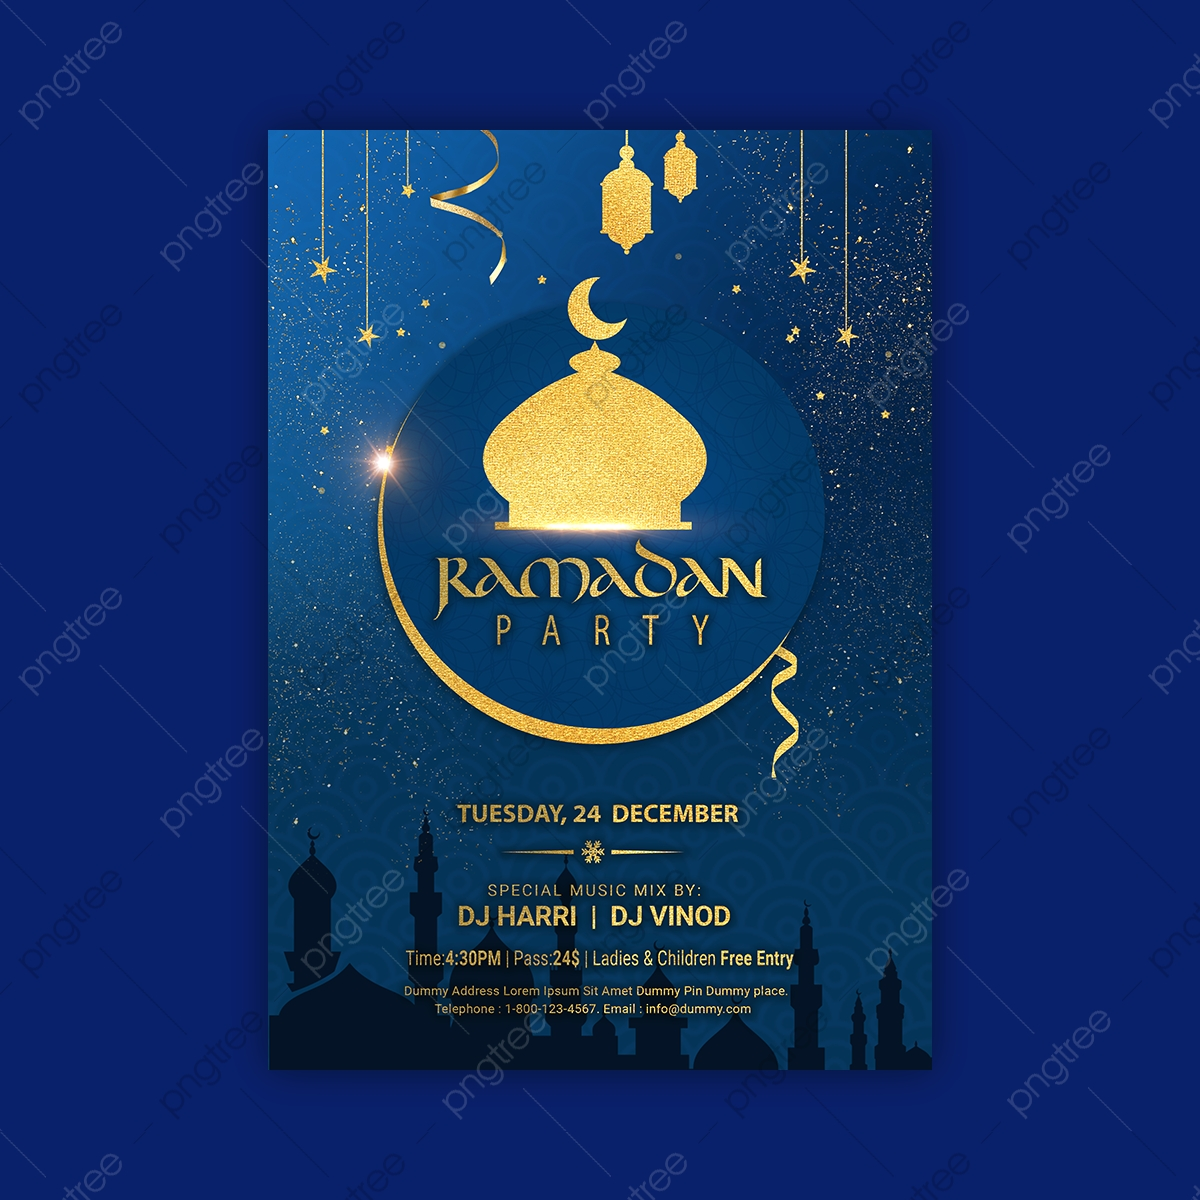 Ramadan Iftar Party Invitation Poster Template Template Download On Pngtree